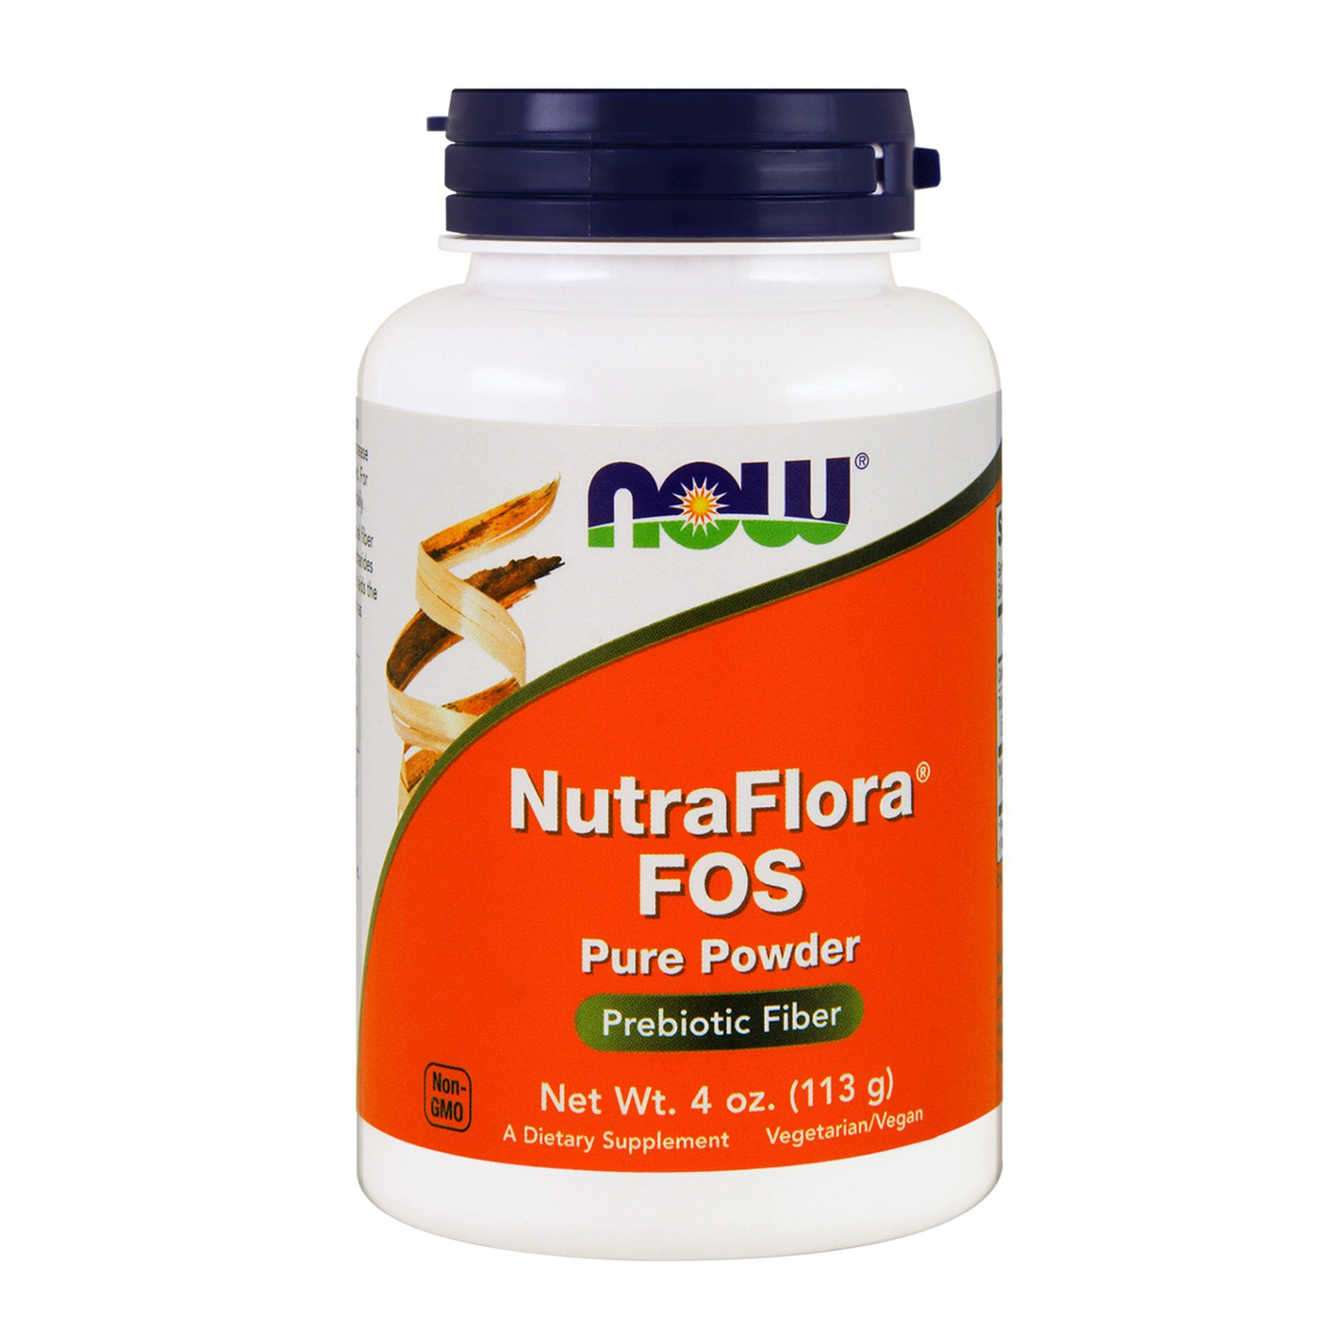 NUTRAFLORA FOS PURE POWDER - 113g